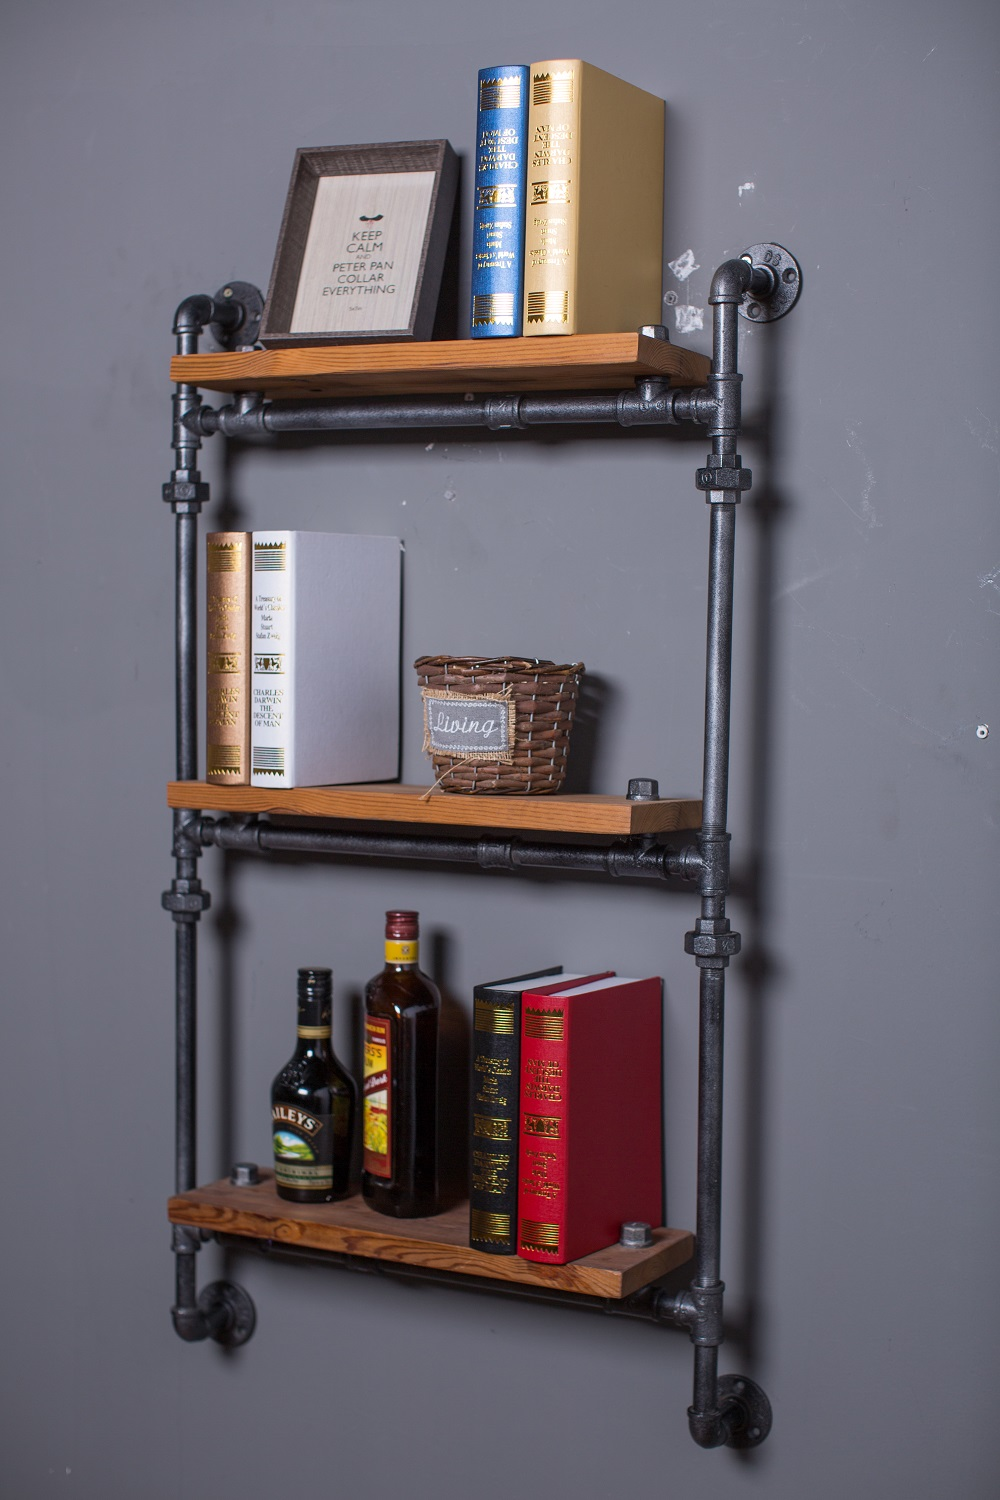 Yuan Separators Mount Bookshelf-Z8 8